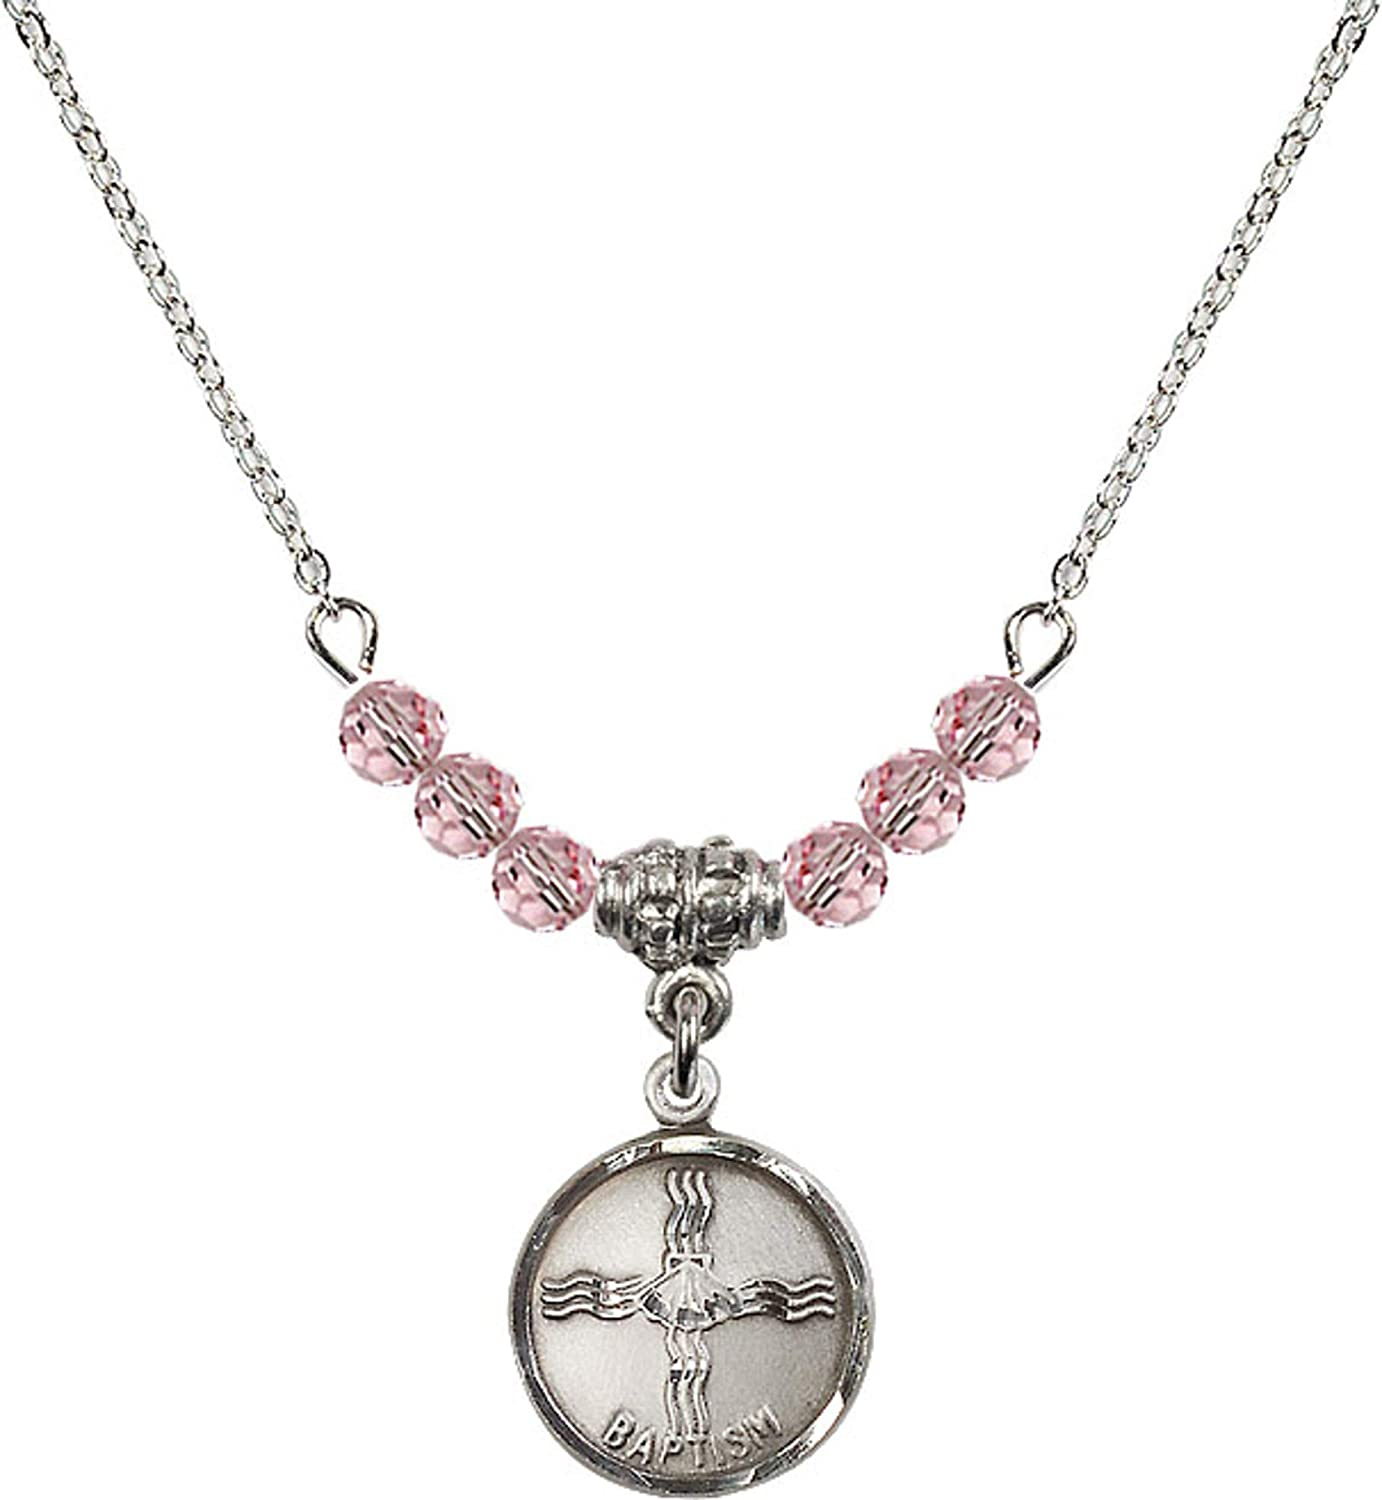 Bonyak Jewelry 18 Inch Rhodium Plated Necklace w// 4mm Light Rose Pink October Birth Month Stone Beads and Baptism Charm